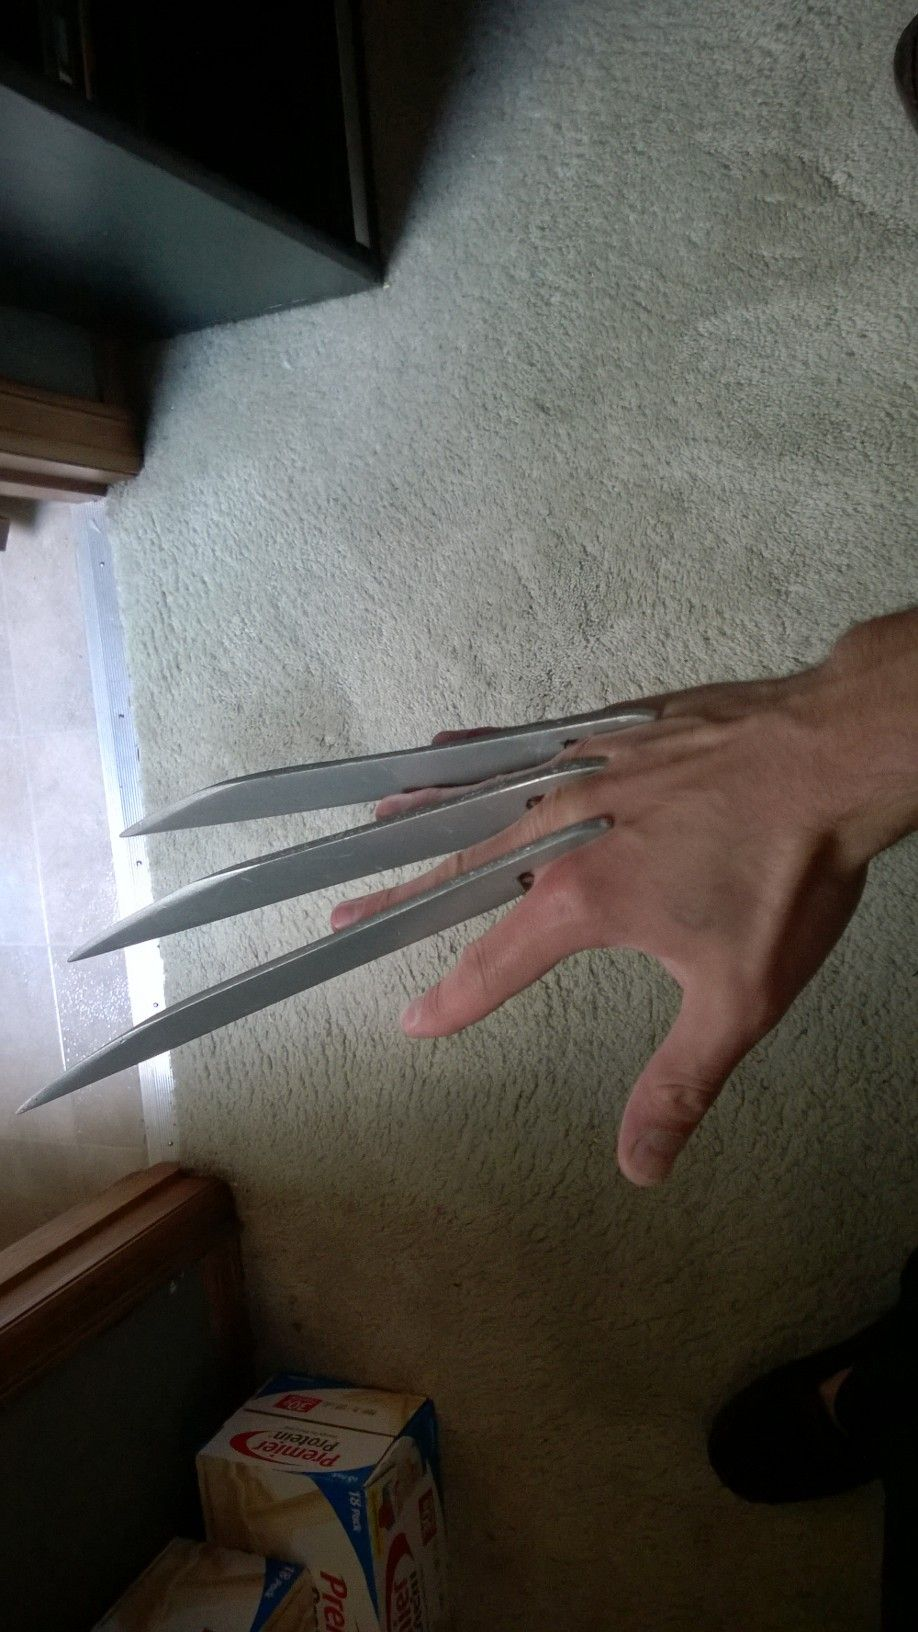 Diy fiberglass wolverine claws cosplay costumes and cosplay tutorial do it yourself wolverine claws solutioingenieria Images